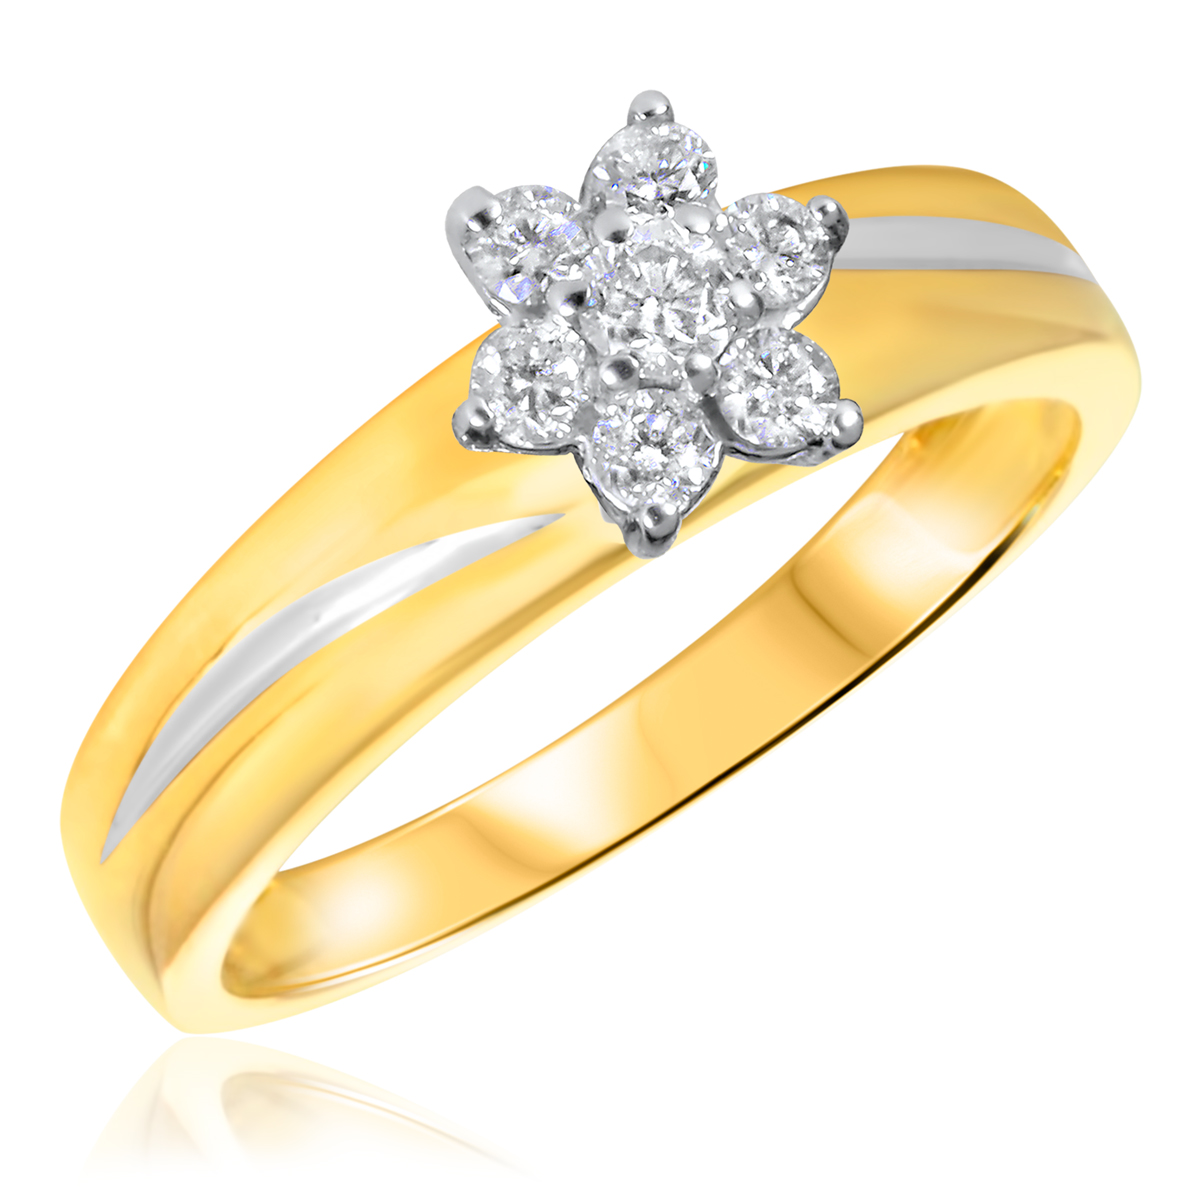 1/4 CT. T.W. Diamond Ladies Engagement Ring 14K Yellow Gold- Size 8